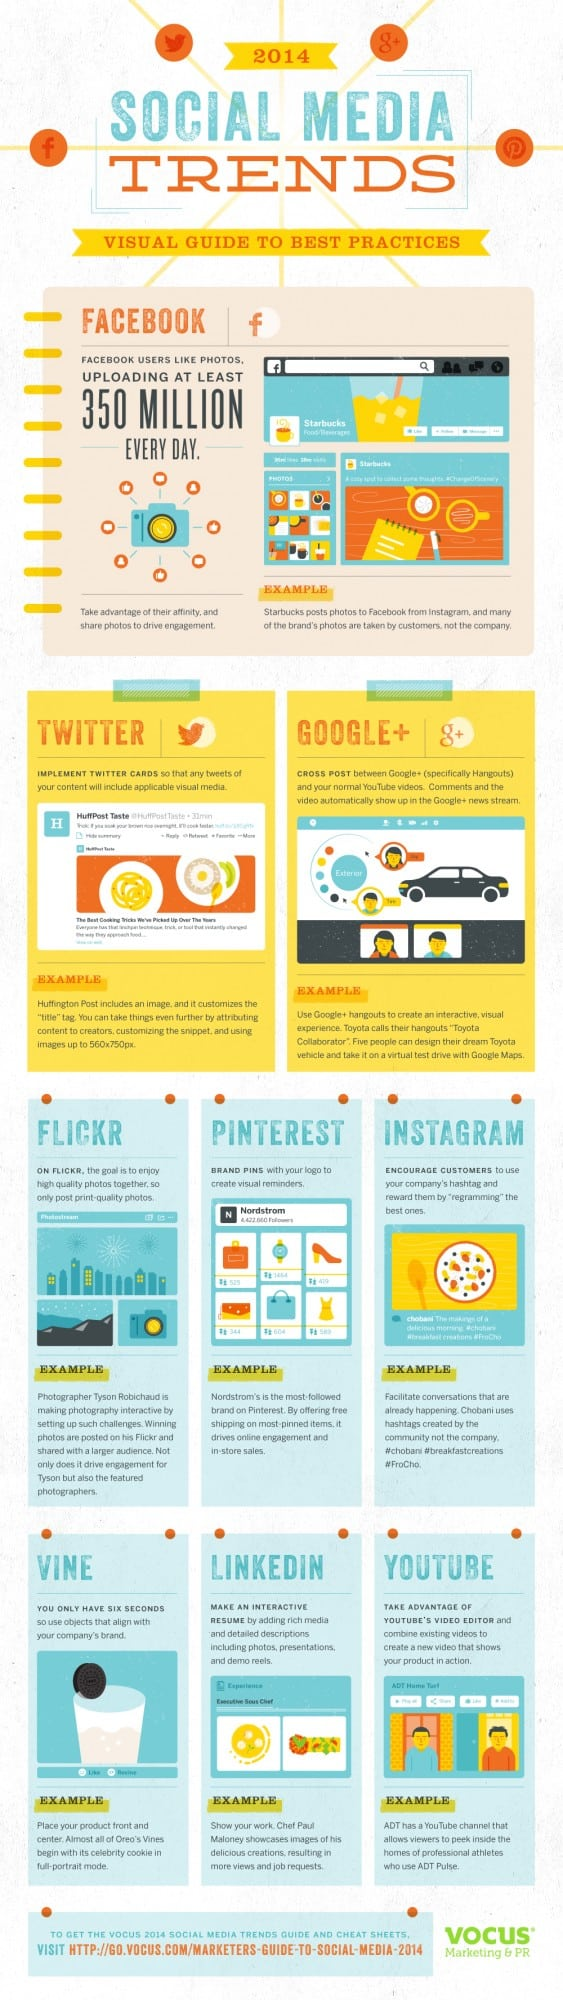 Social-Media-Best-Practices-Infographic